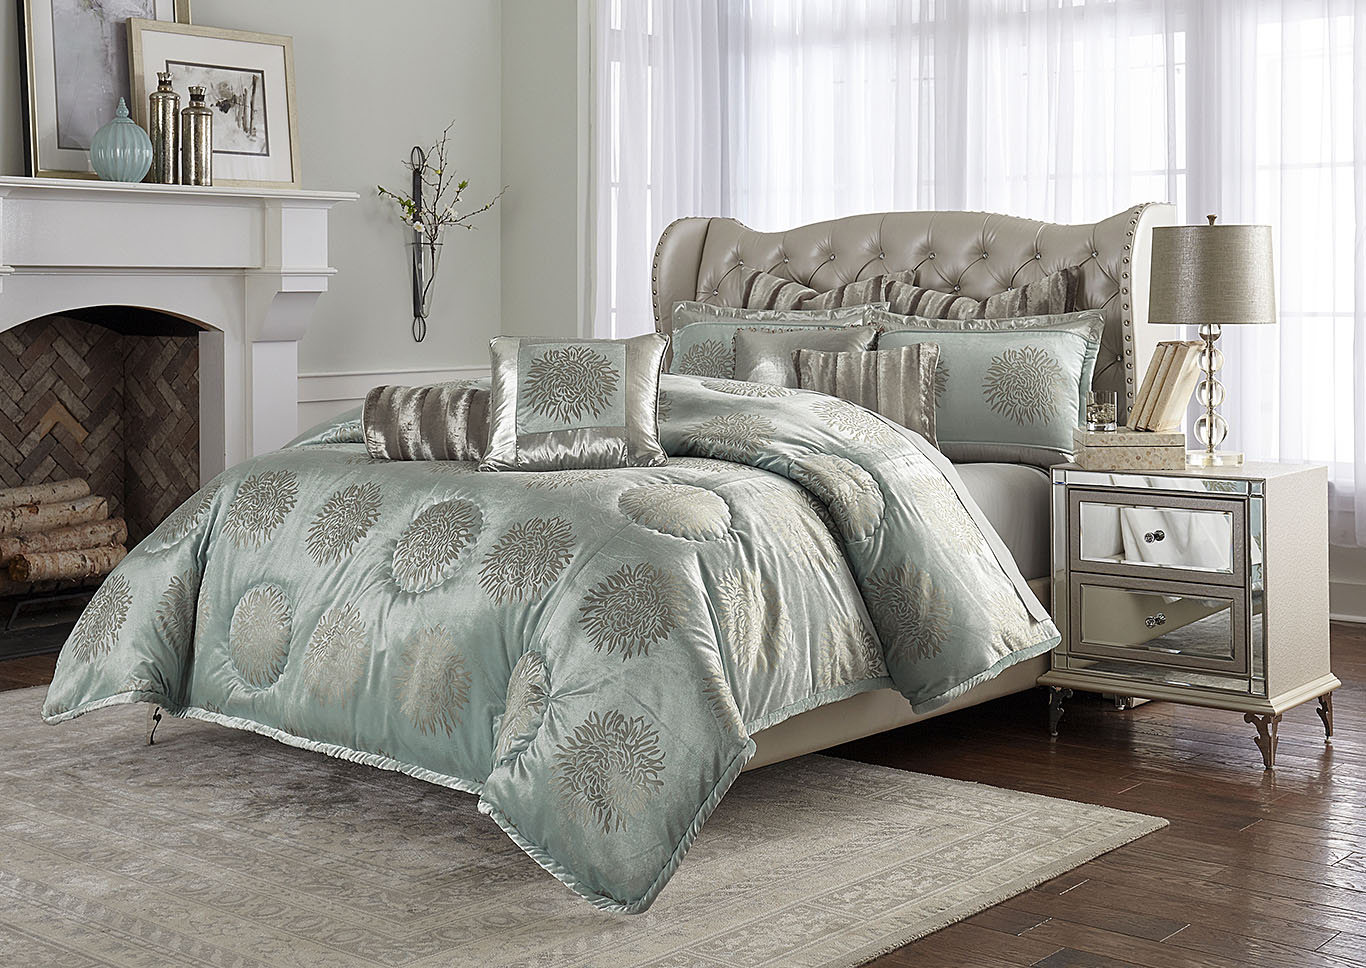 Regent Aqua  9 pc. Queen Comforter Set,AICO